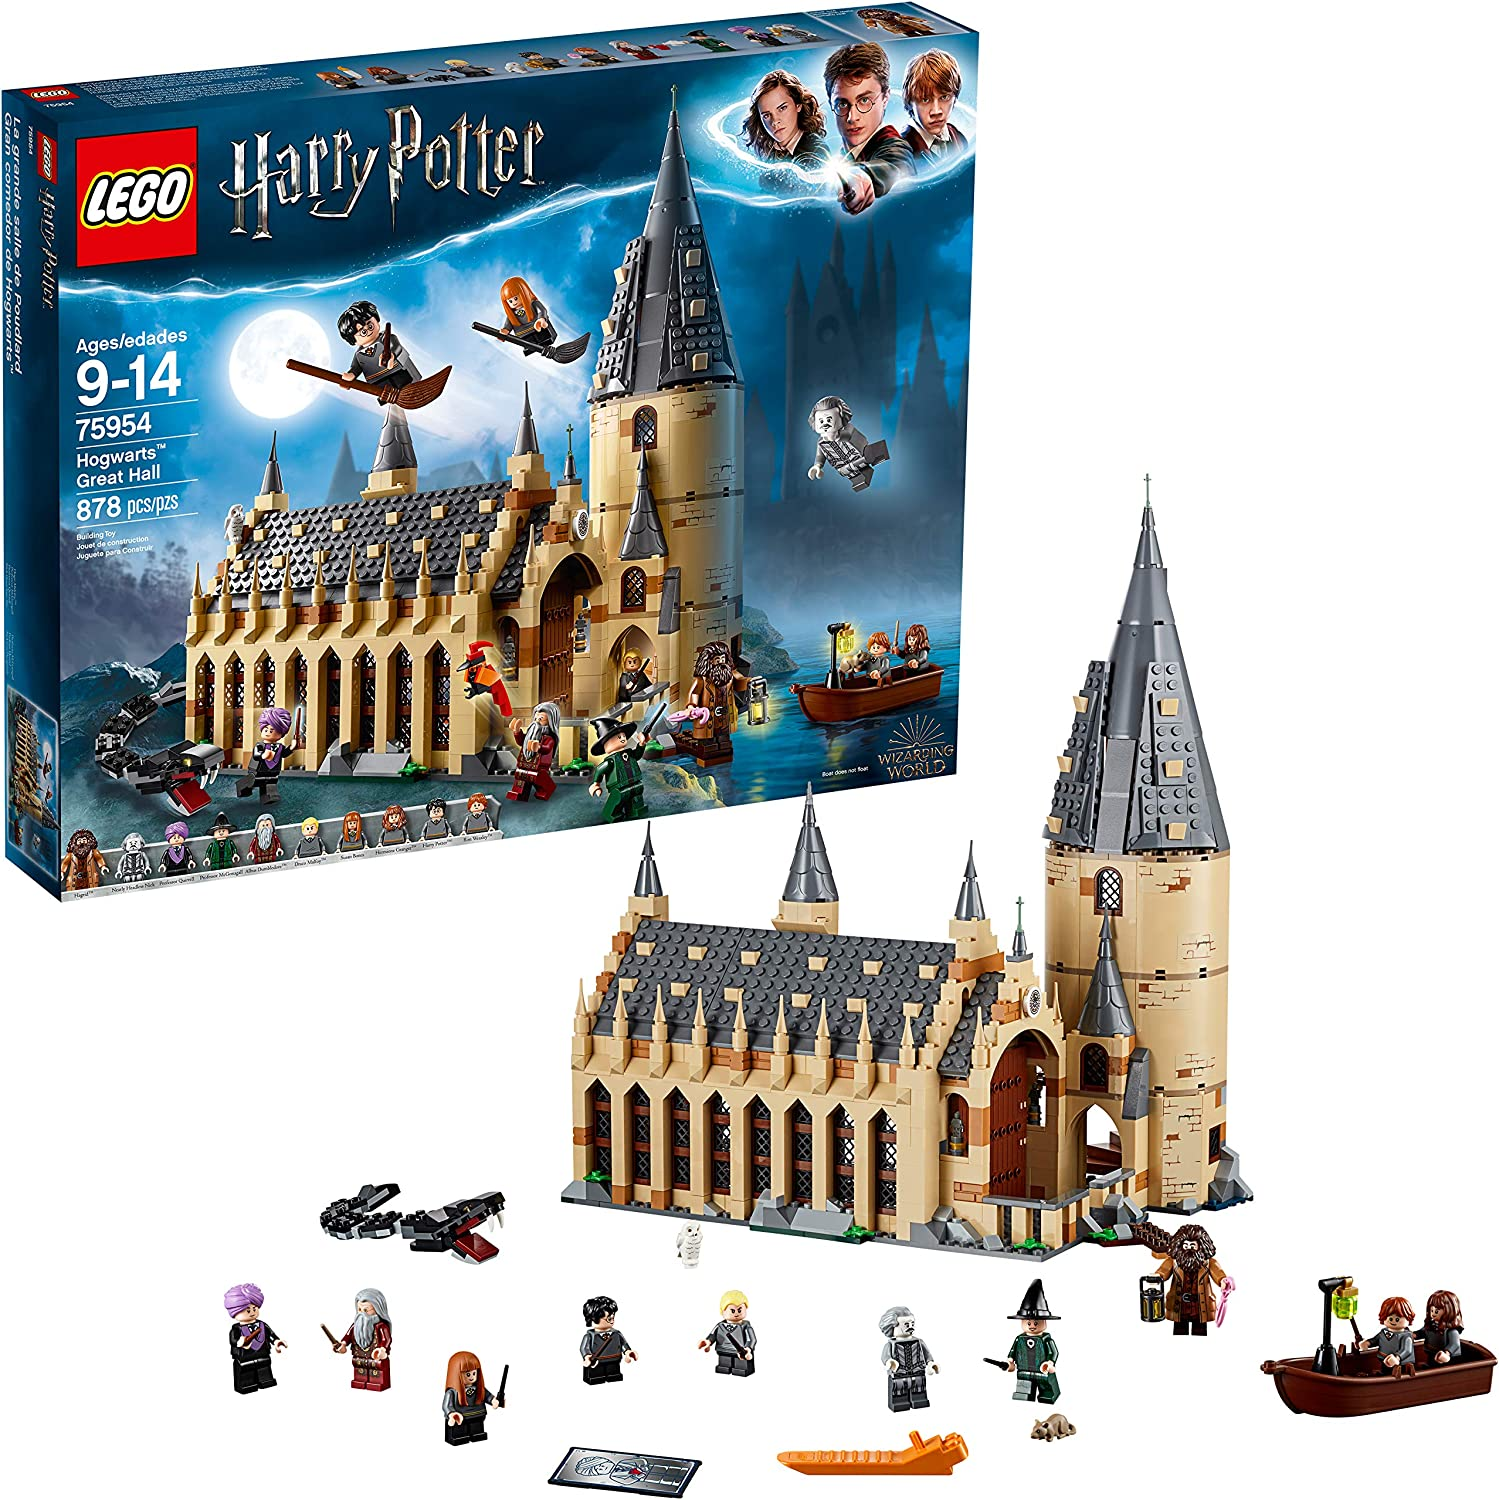 Mua LEGO Harry Potter Hogwarts Great Hall 75954 Building Kit and Magic  Castle Toy, Fantasy Creatures, Hermione Granger, Draco Malfoy and Hagrid  (878 Pieces) trên Amazon Mỹ - Danh mục Bộ Xây